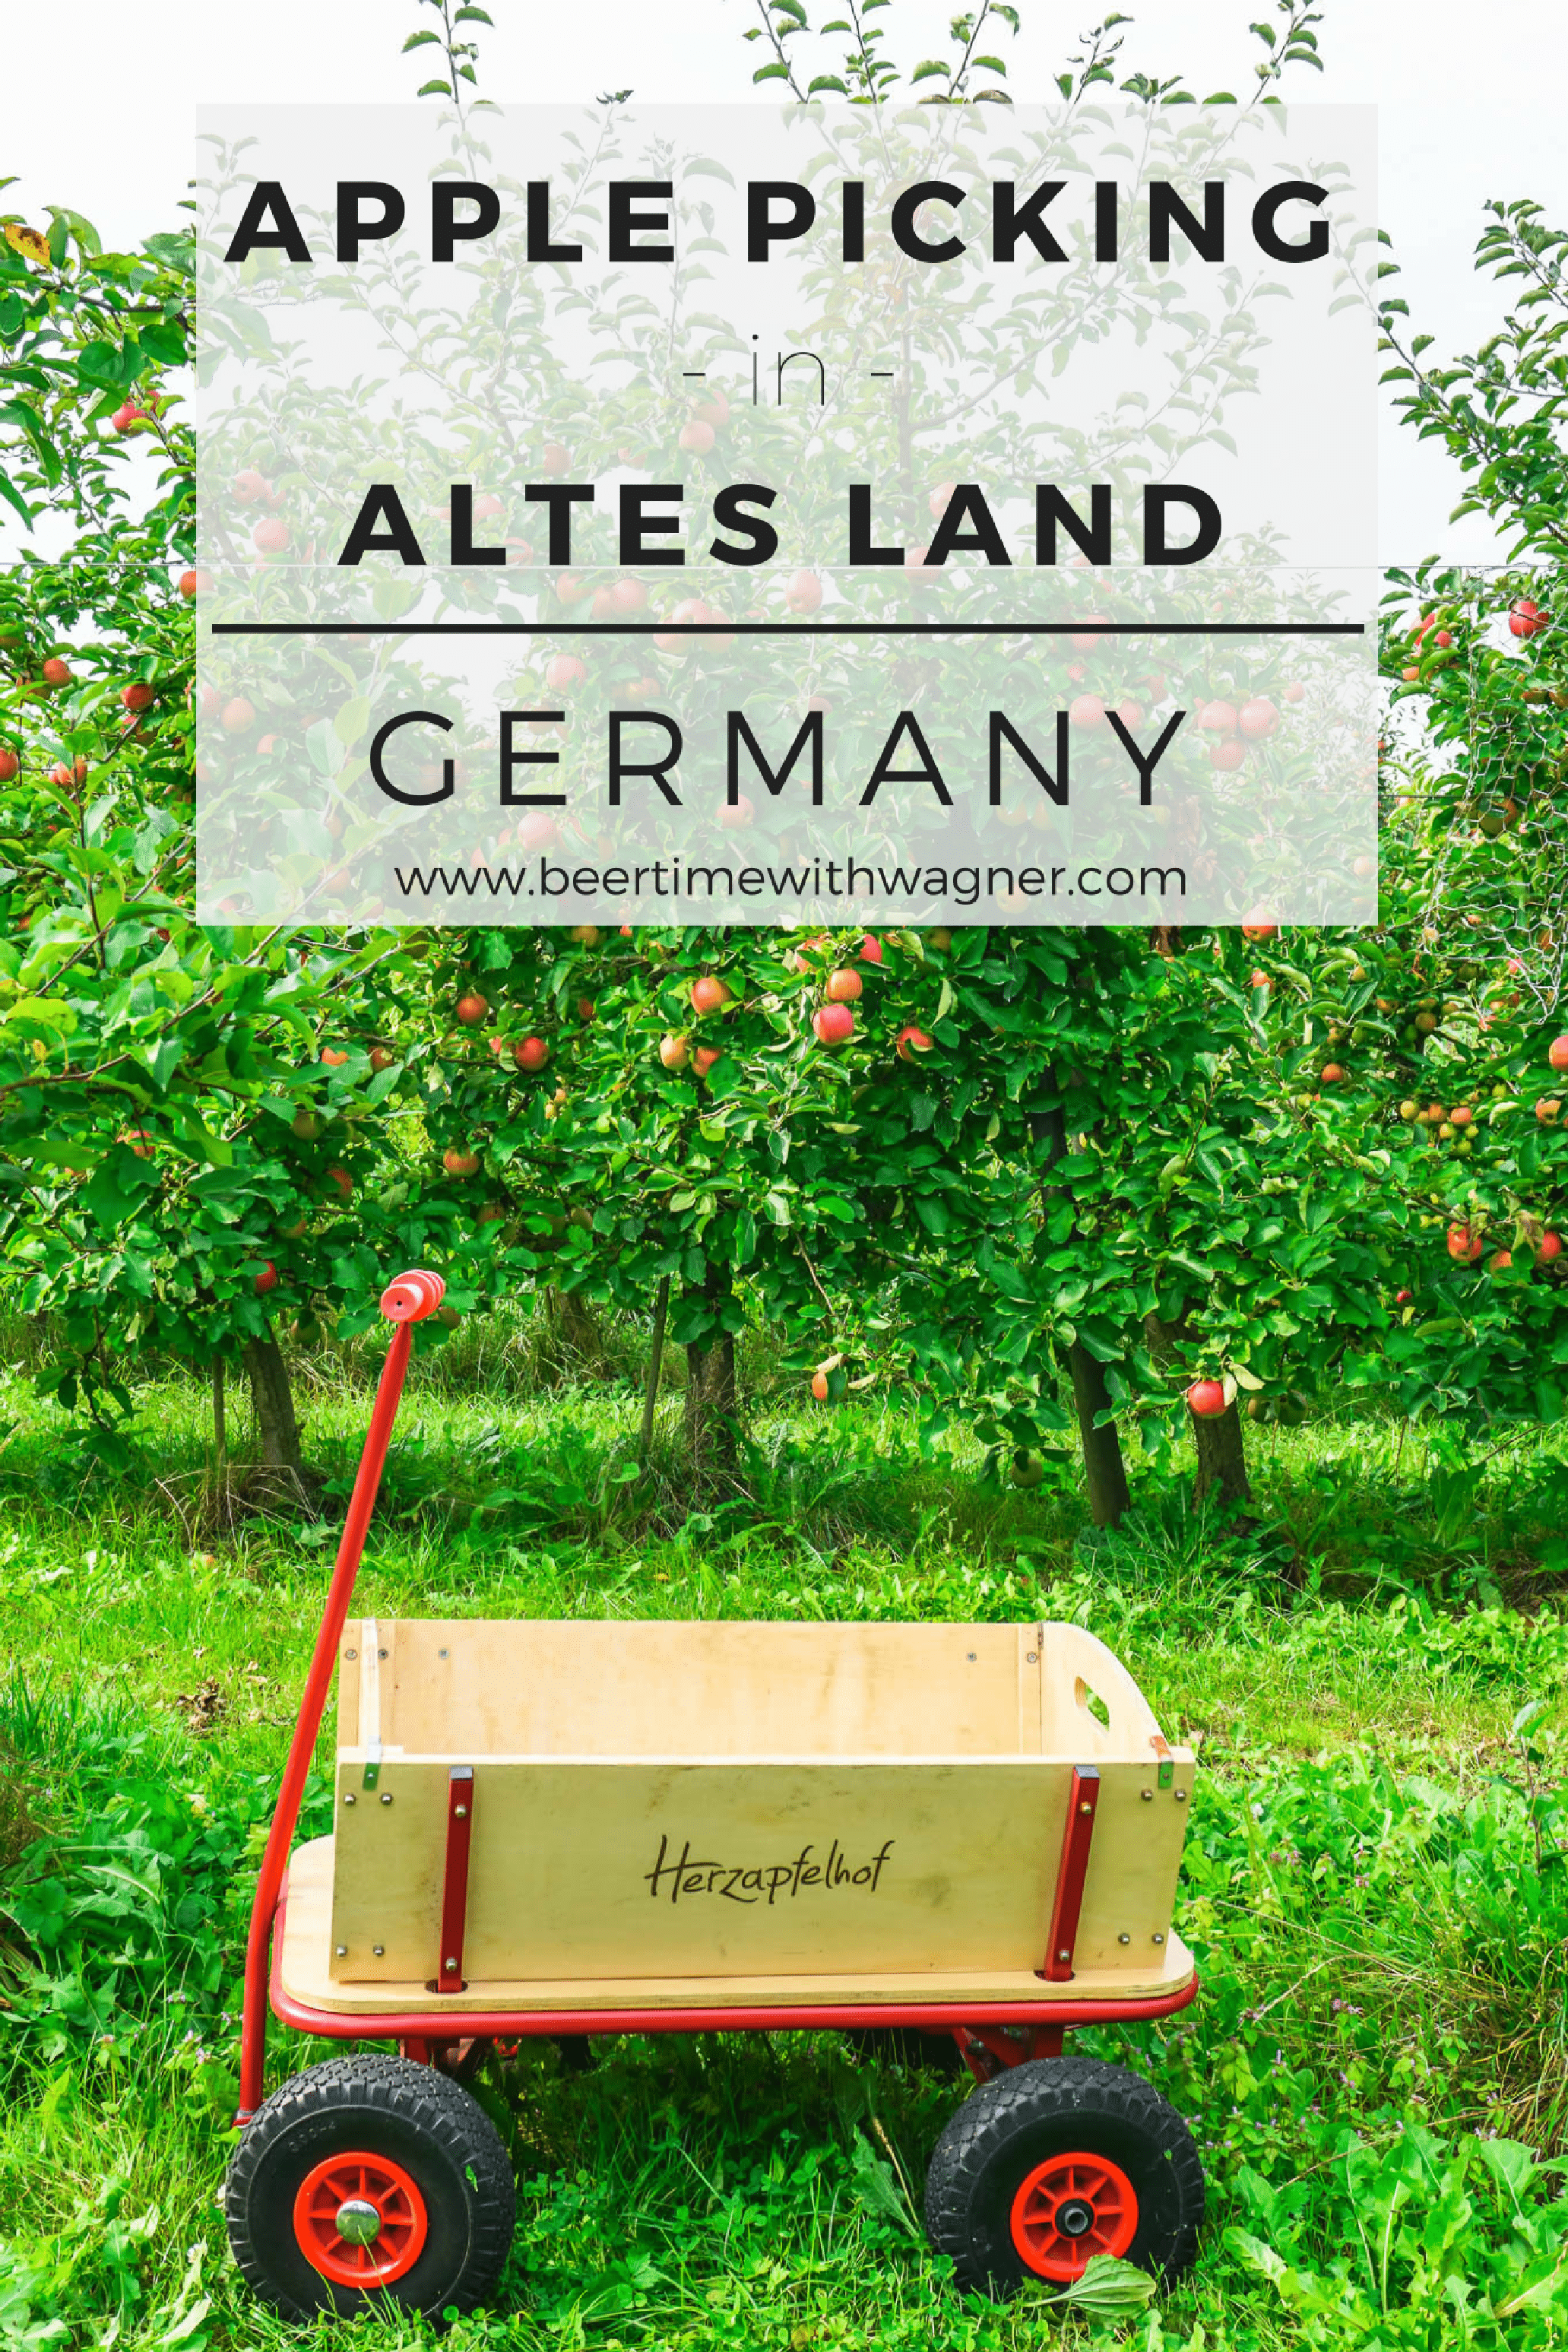 Apple Picking Germany via Wayfaring With Wagner